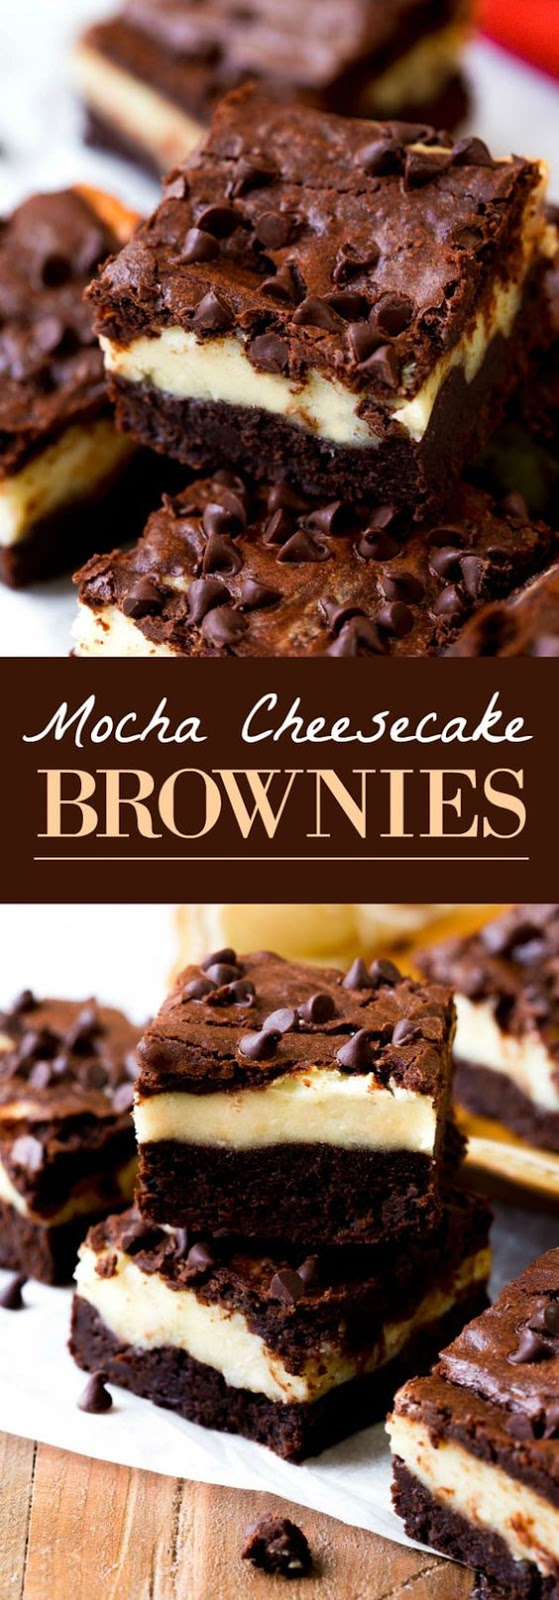 Mocha Cheesecake Brownies is part of Desserts - 2 cup (11